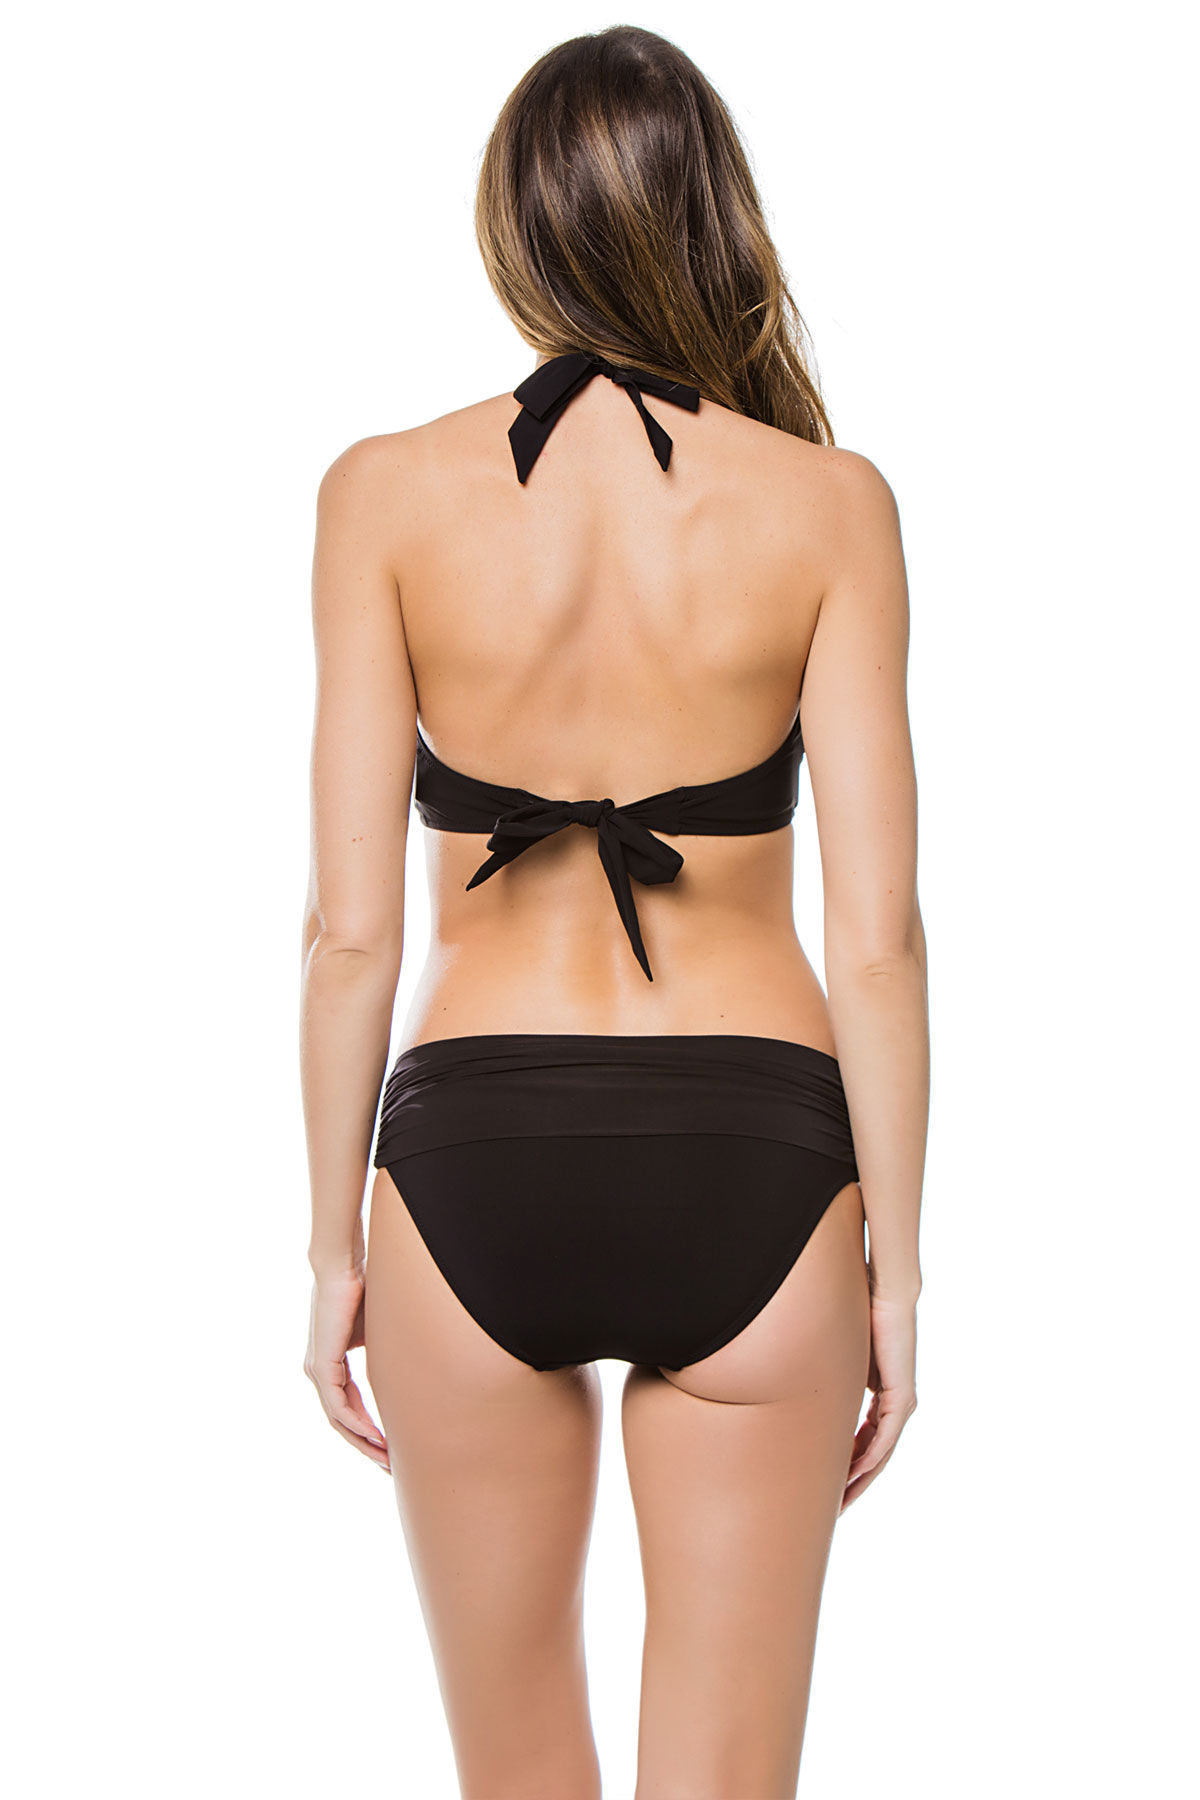 Ruched Halter Bikini Top (D-G Cup) - Black 4